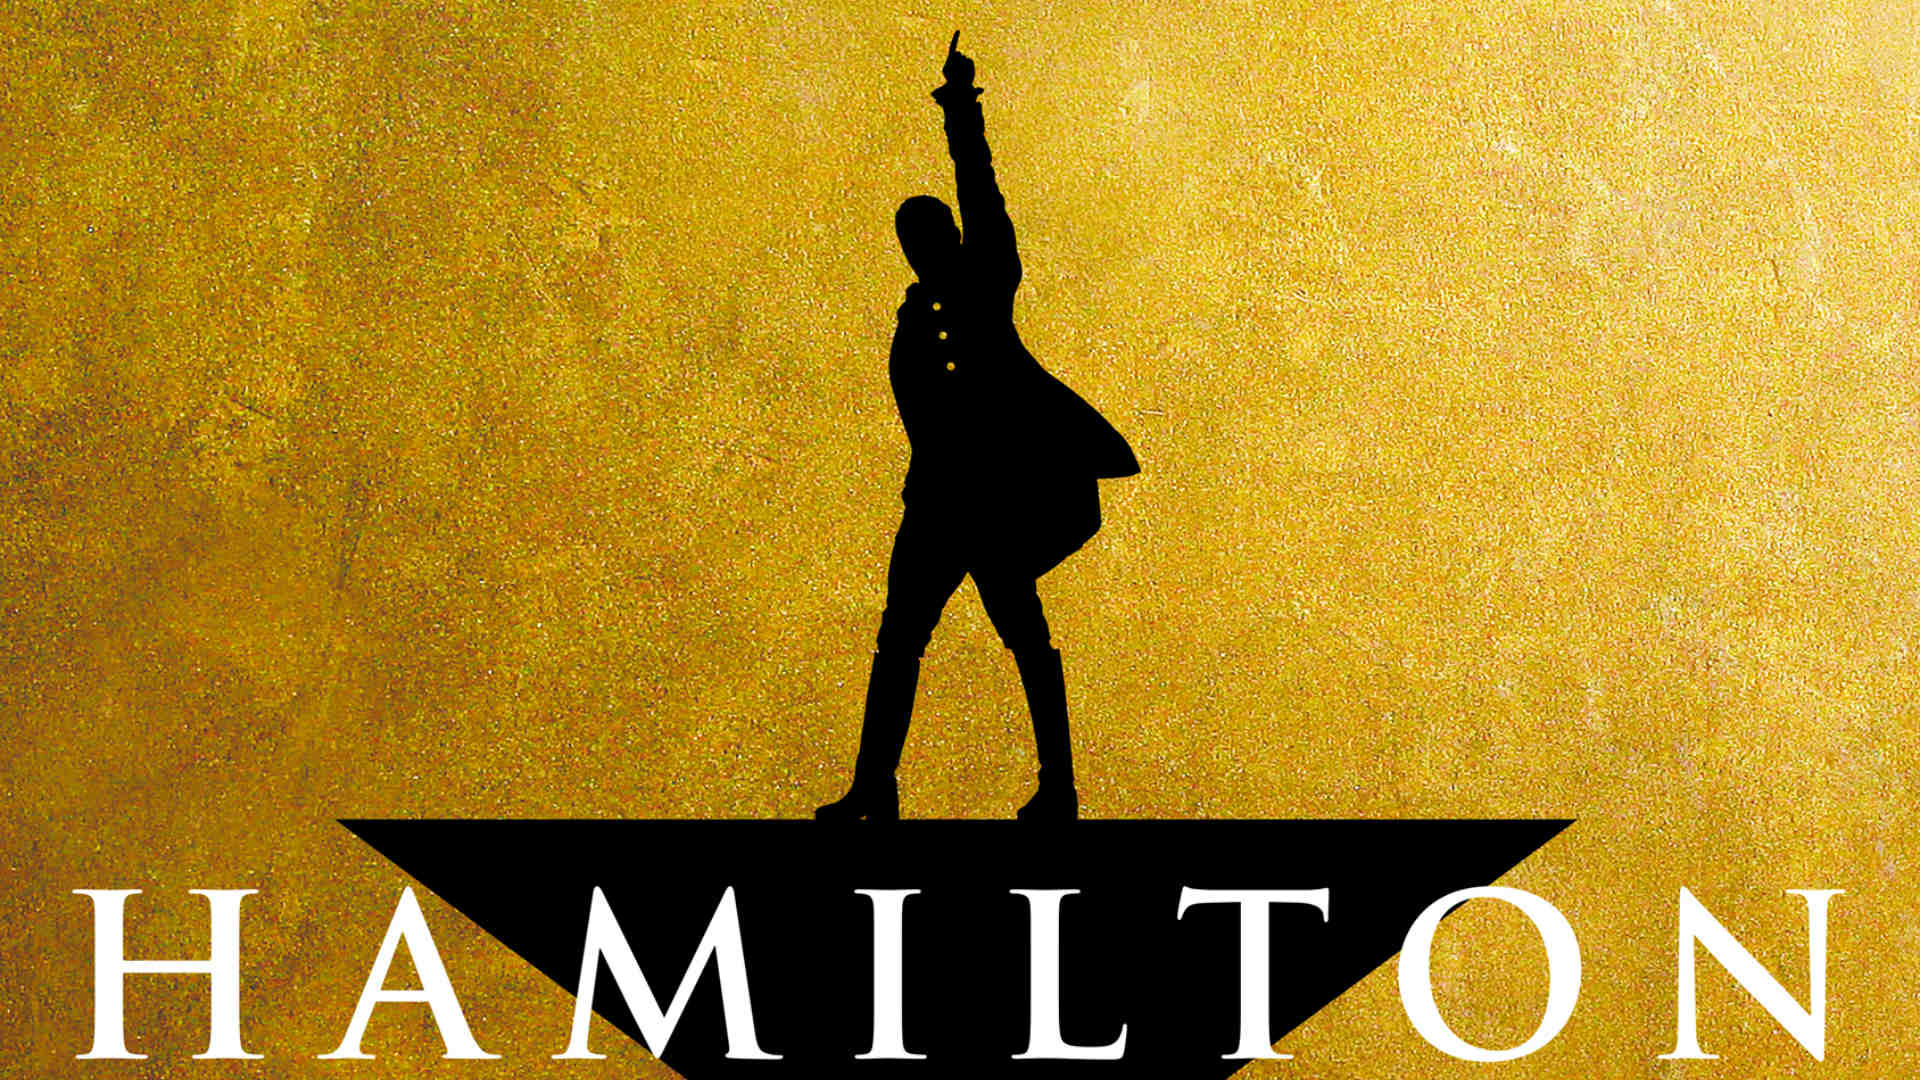 Disney is Fast-tracking Hamilton's Disney+ Premiere to July 03